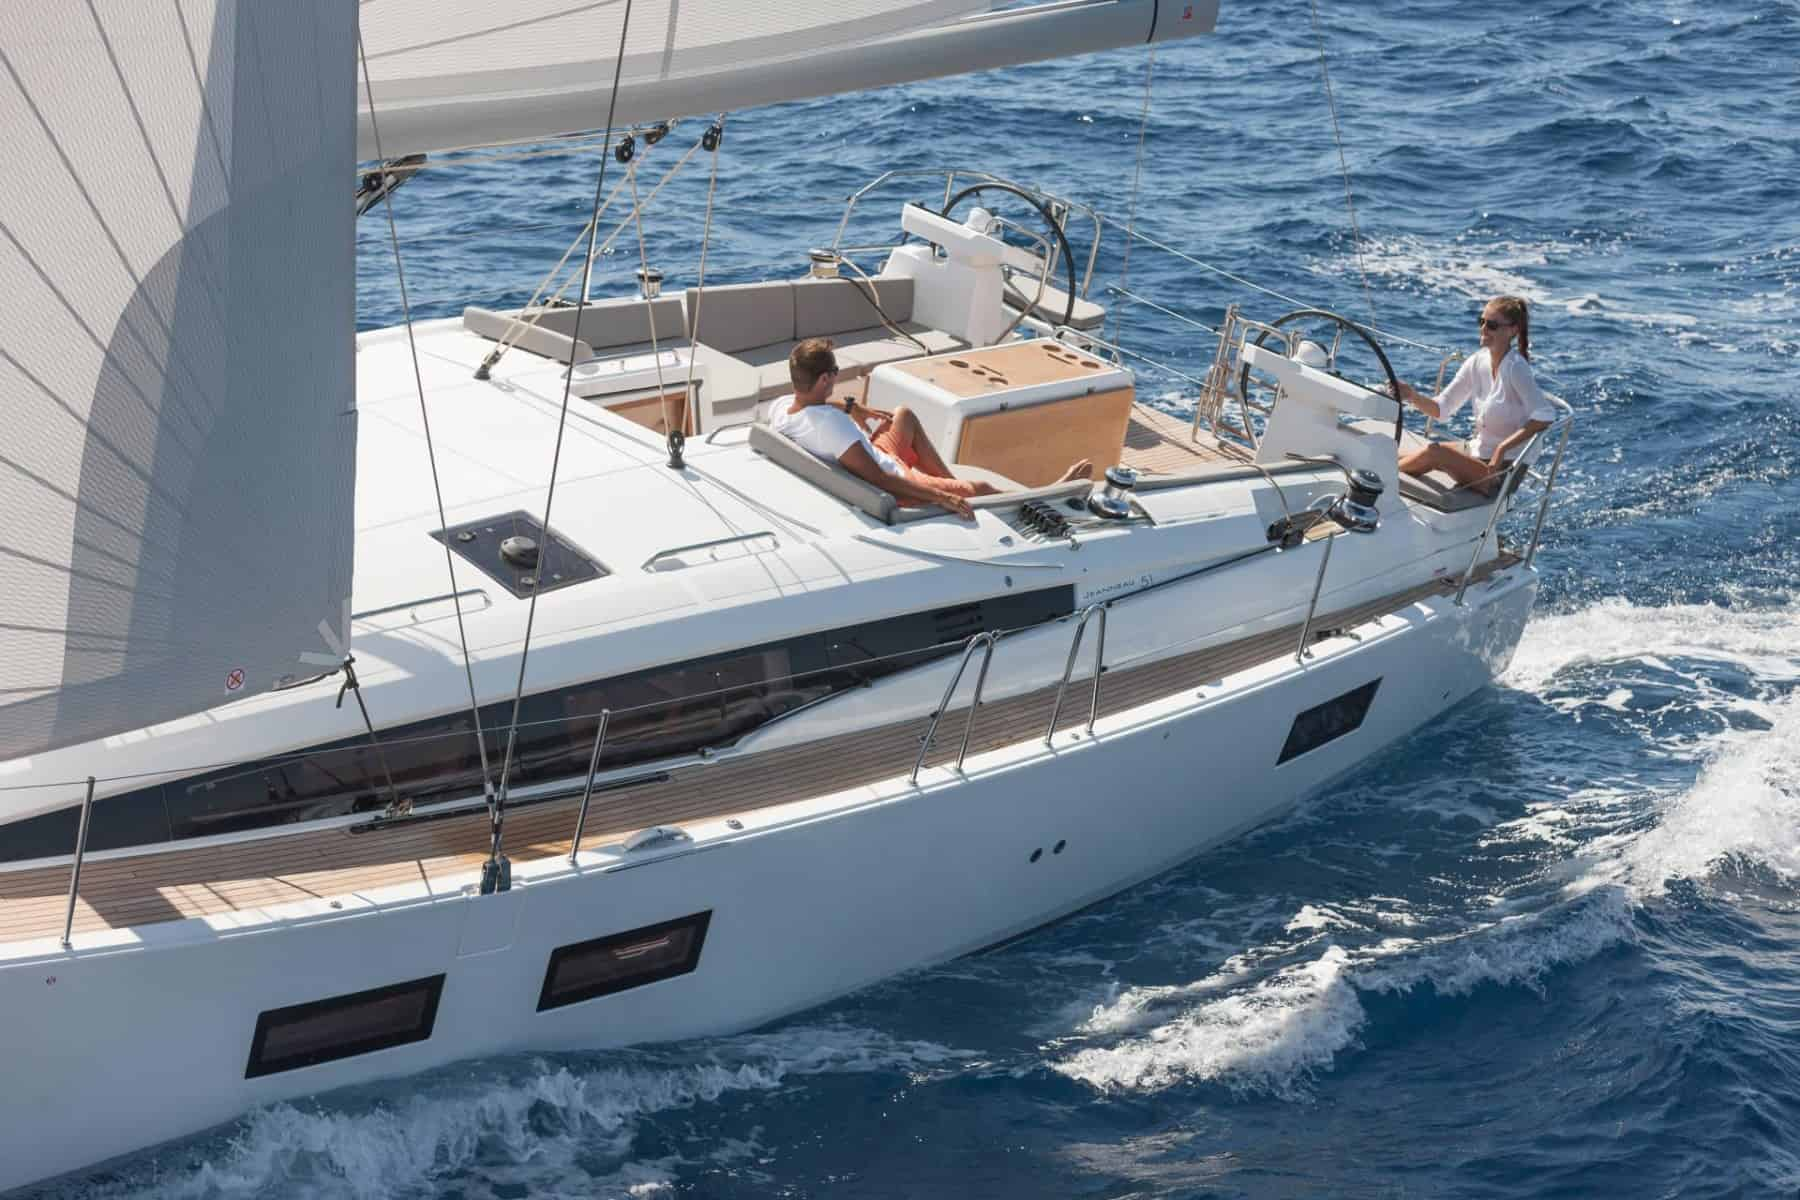 Jeanneau-51-exterior-14-charter-ownership-yacht